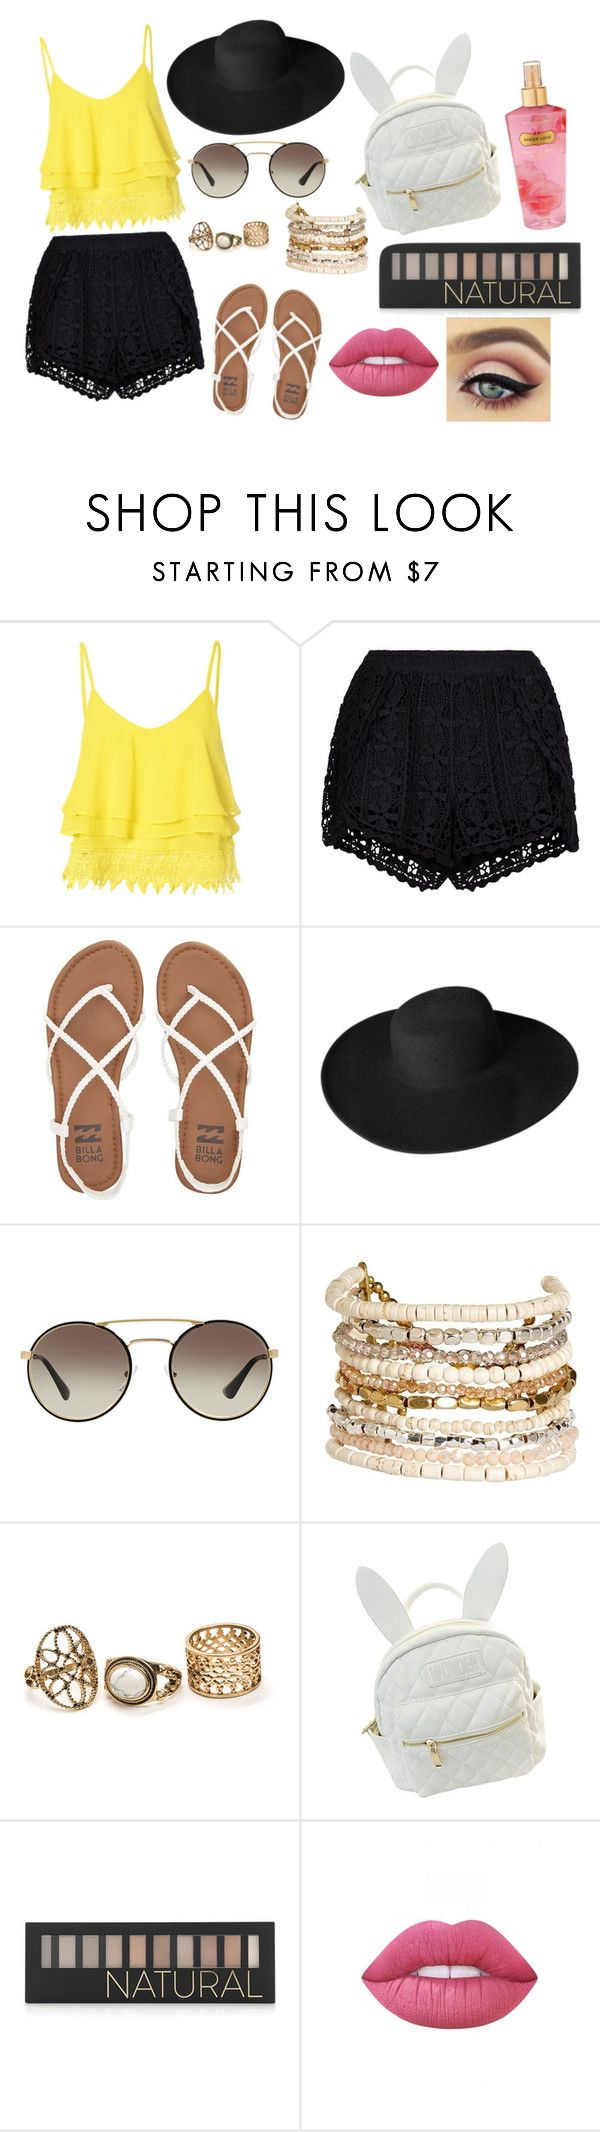 """Playa por la Noche"" by clarisaguerra-243 ❤ liked on Polyvore featuring Glamorous, New Look, Billabong, Dorfman Pacific, Prada, Panacea, cutekawaii, Forever 21, Lime Crime and Victoria's Secret"